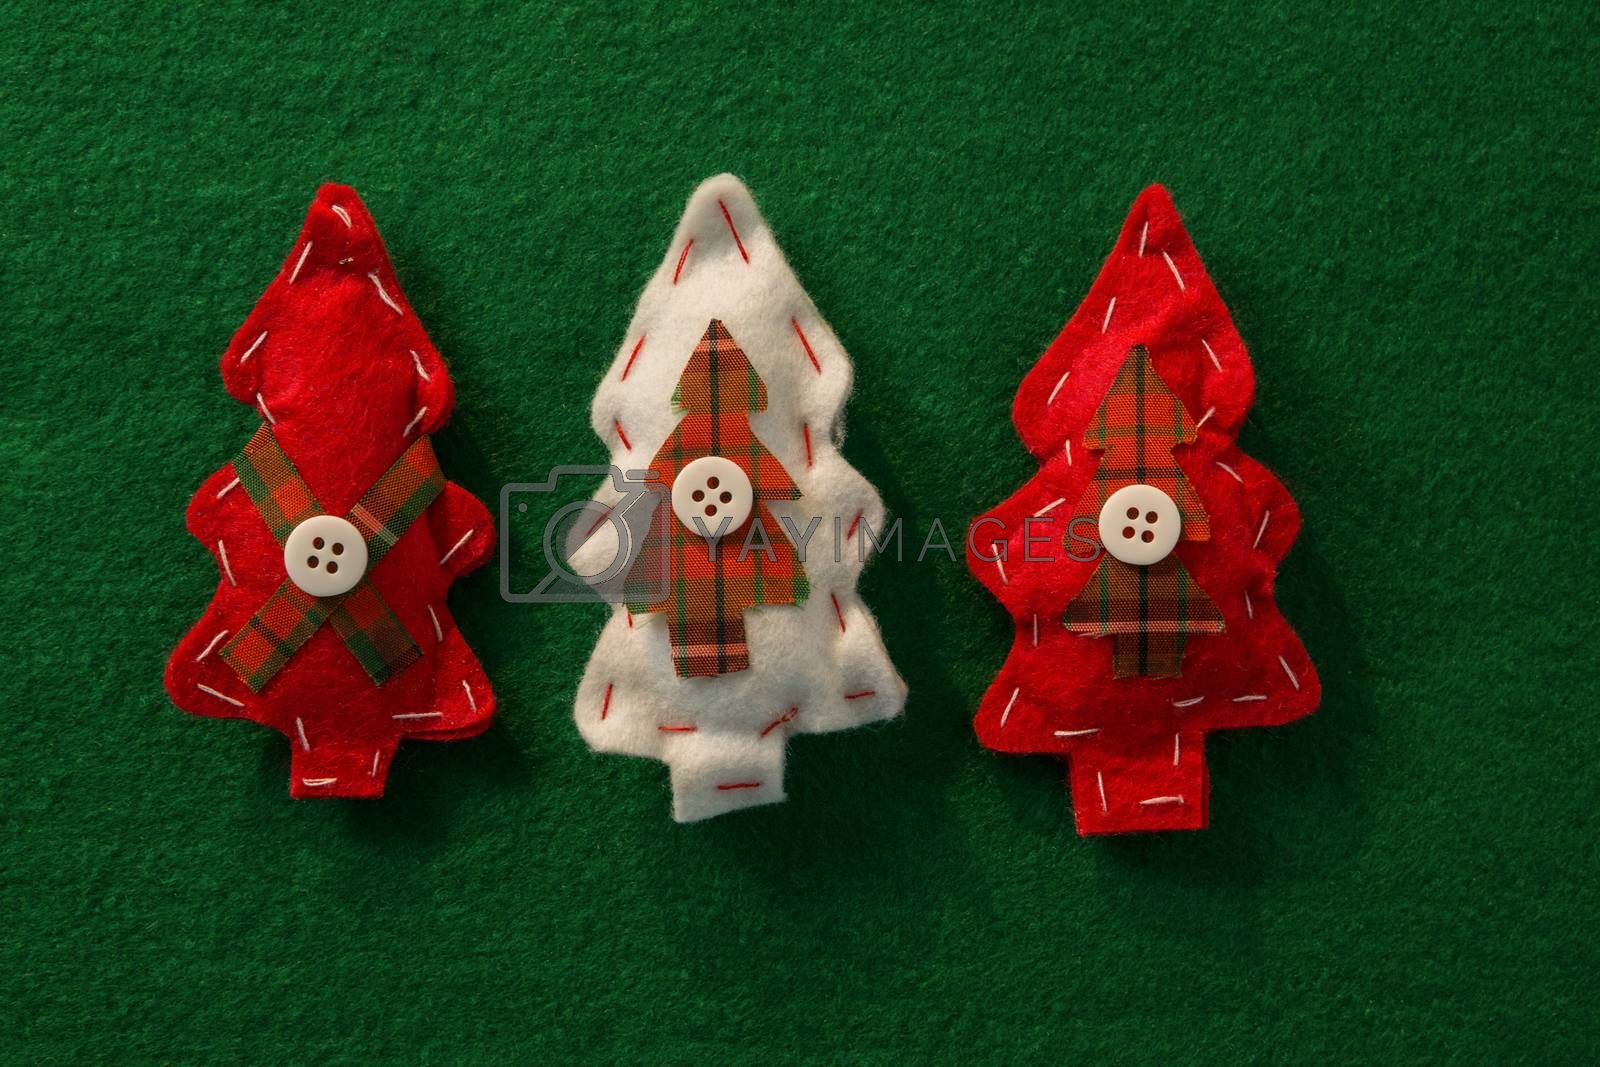 Directly above shot of Christmas tree decoration by Wavebreakmedia